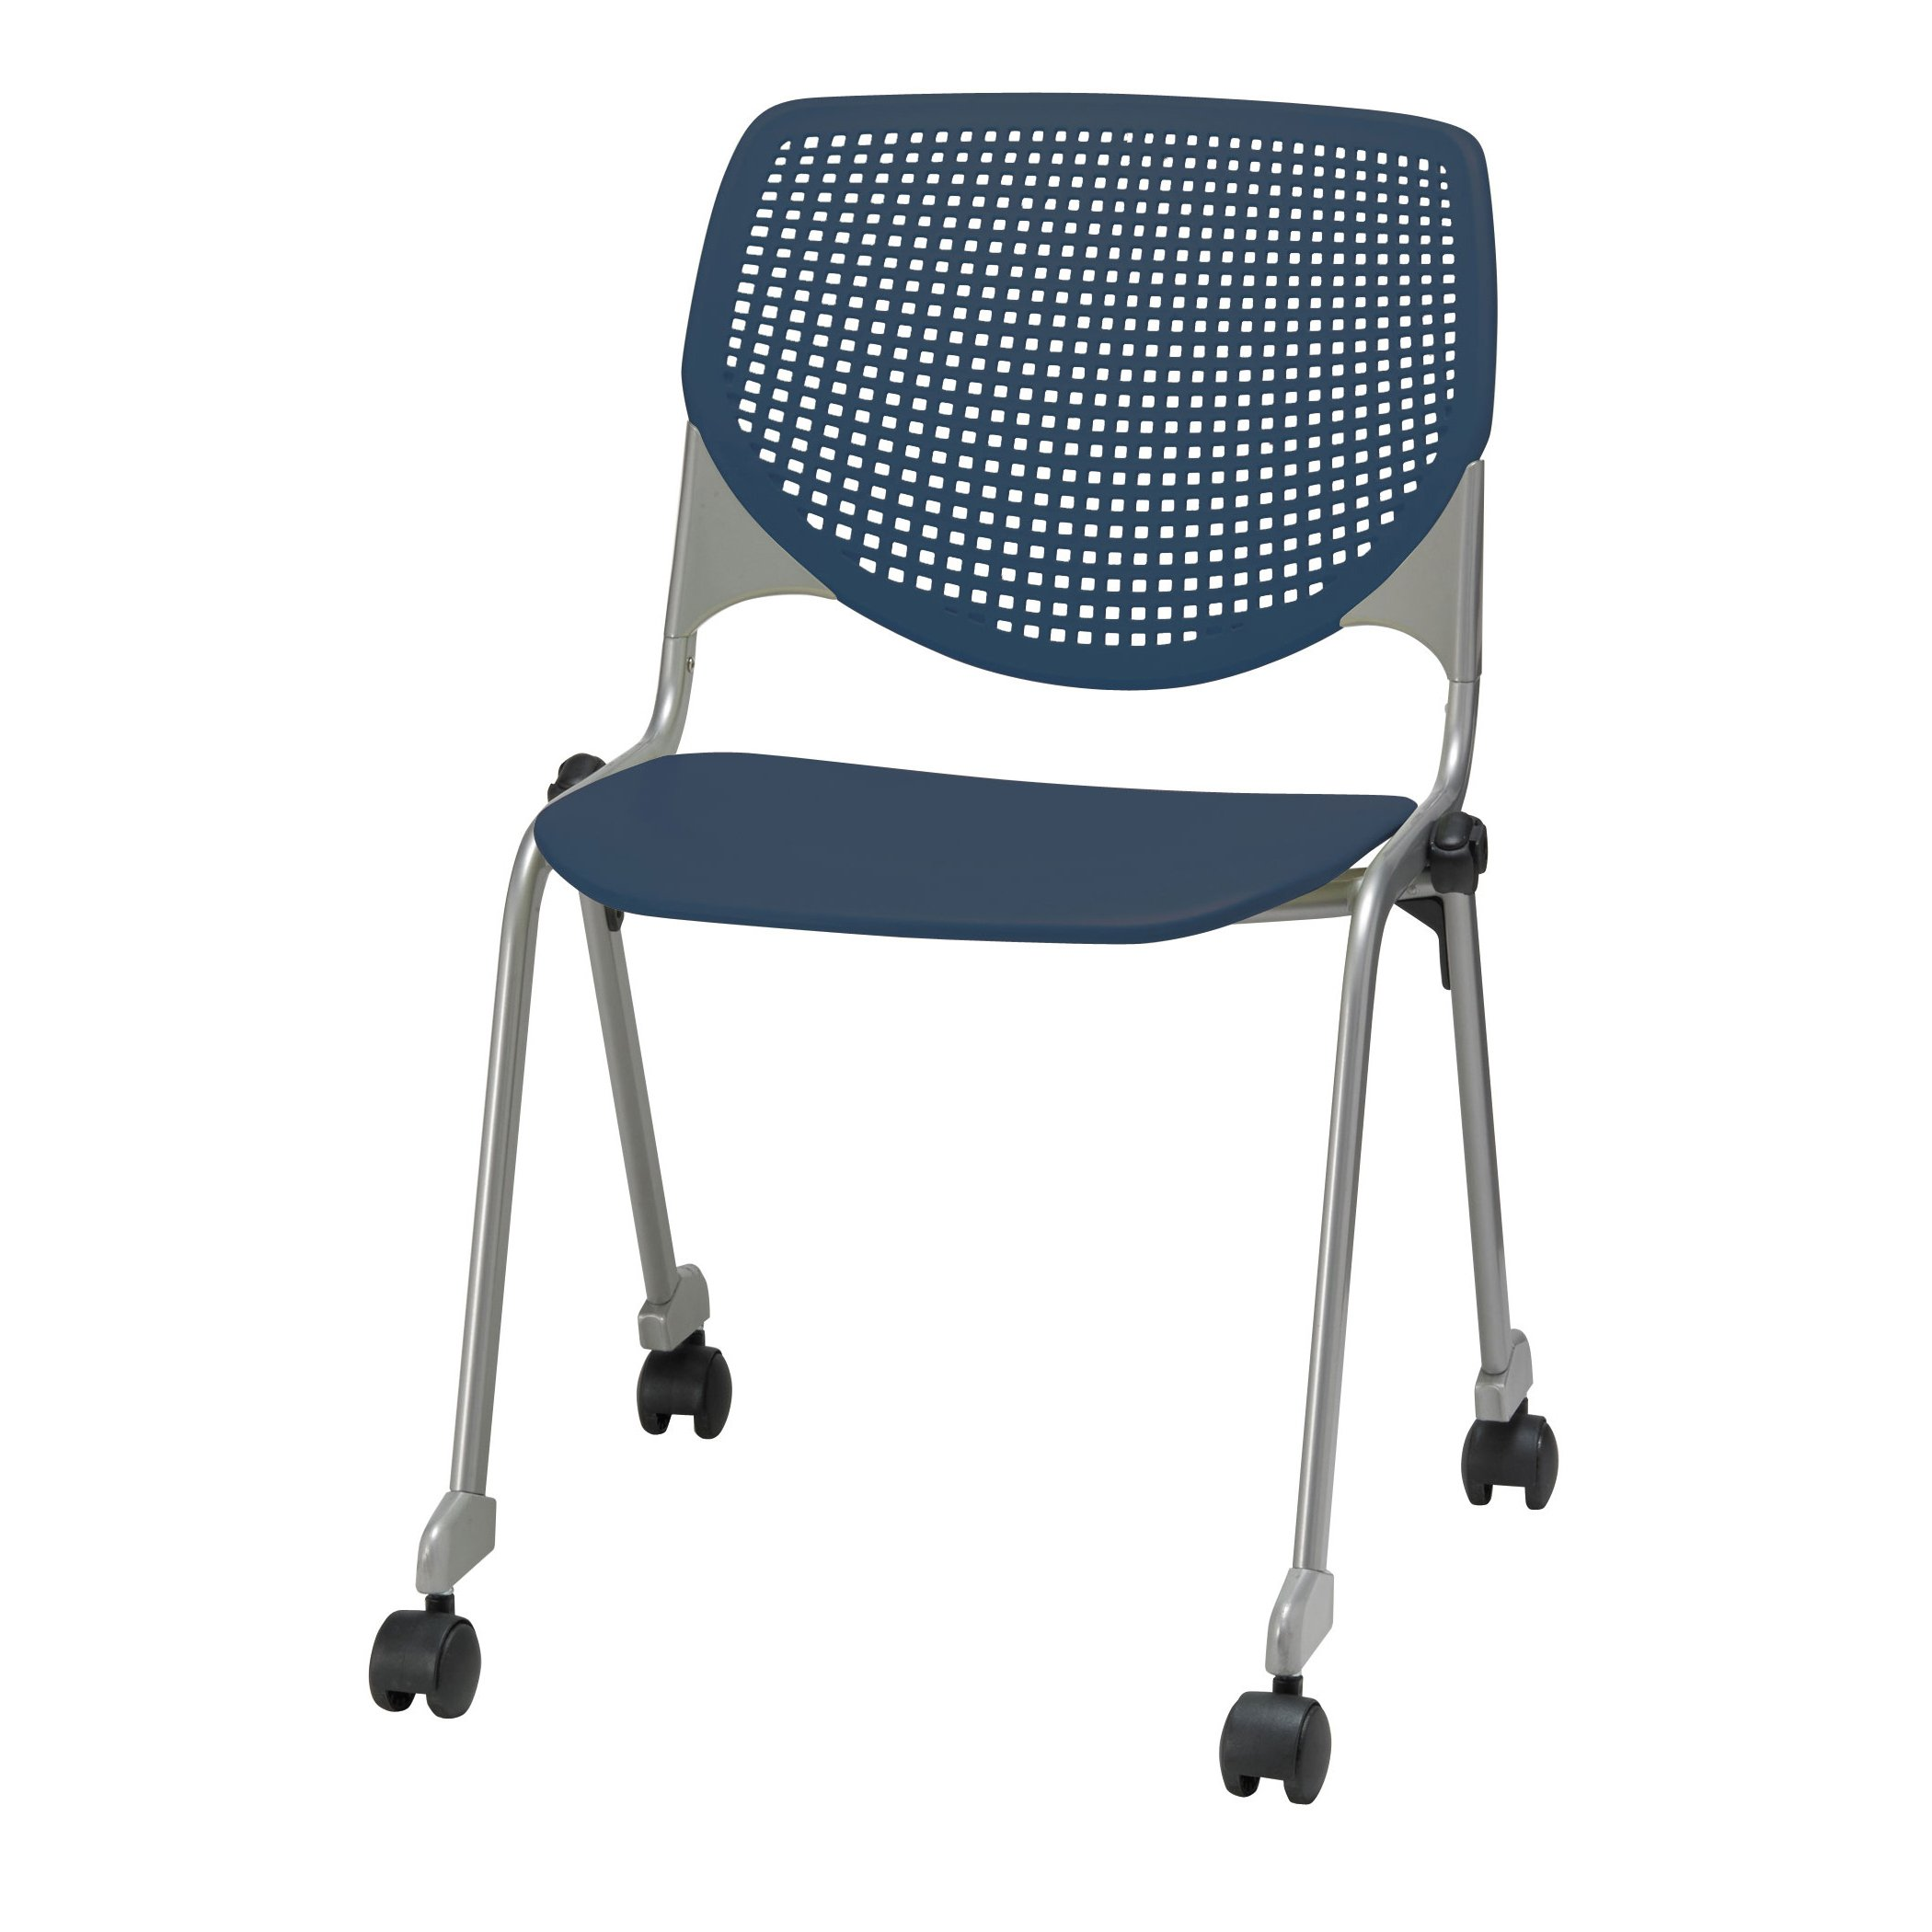 KFI Seating KOOL Series Polypropylene Stack Chair with Perforated Back and Casters, Navy Finish